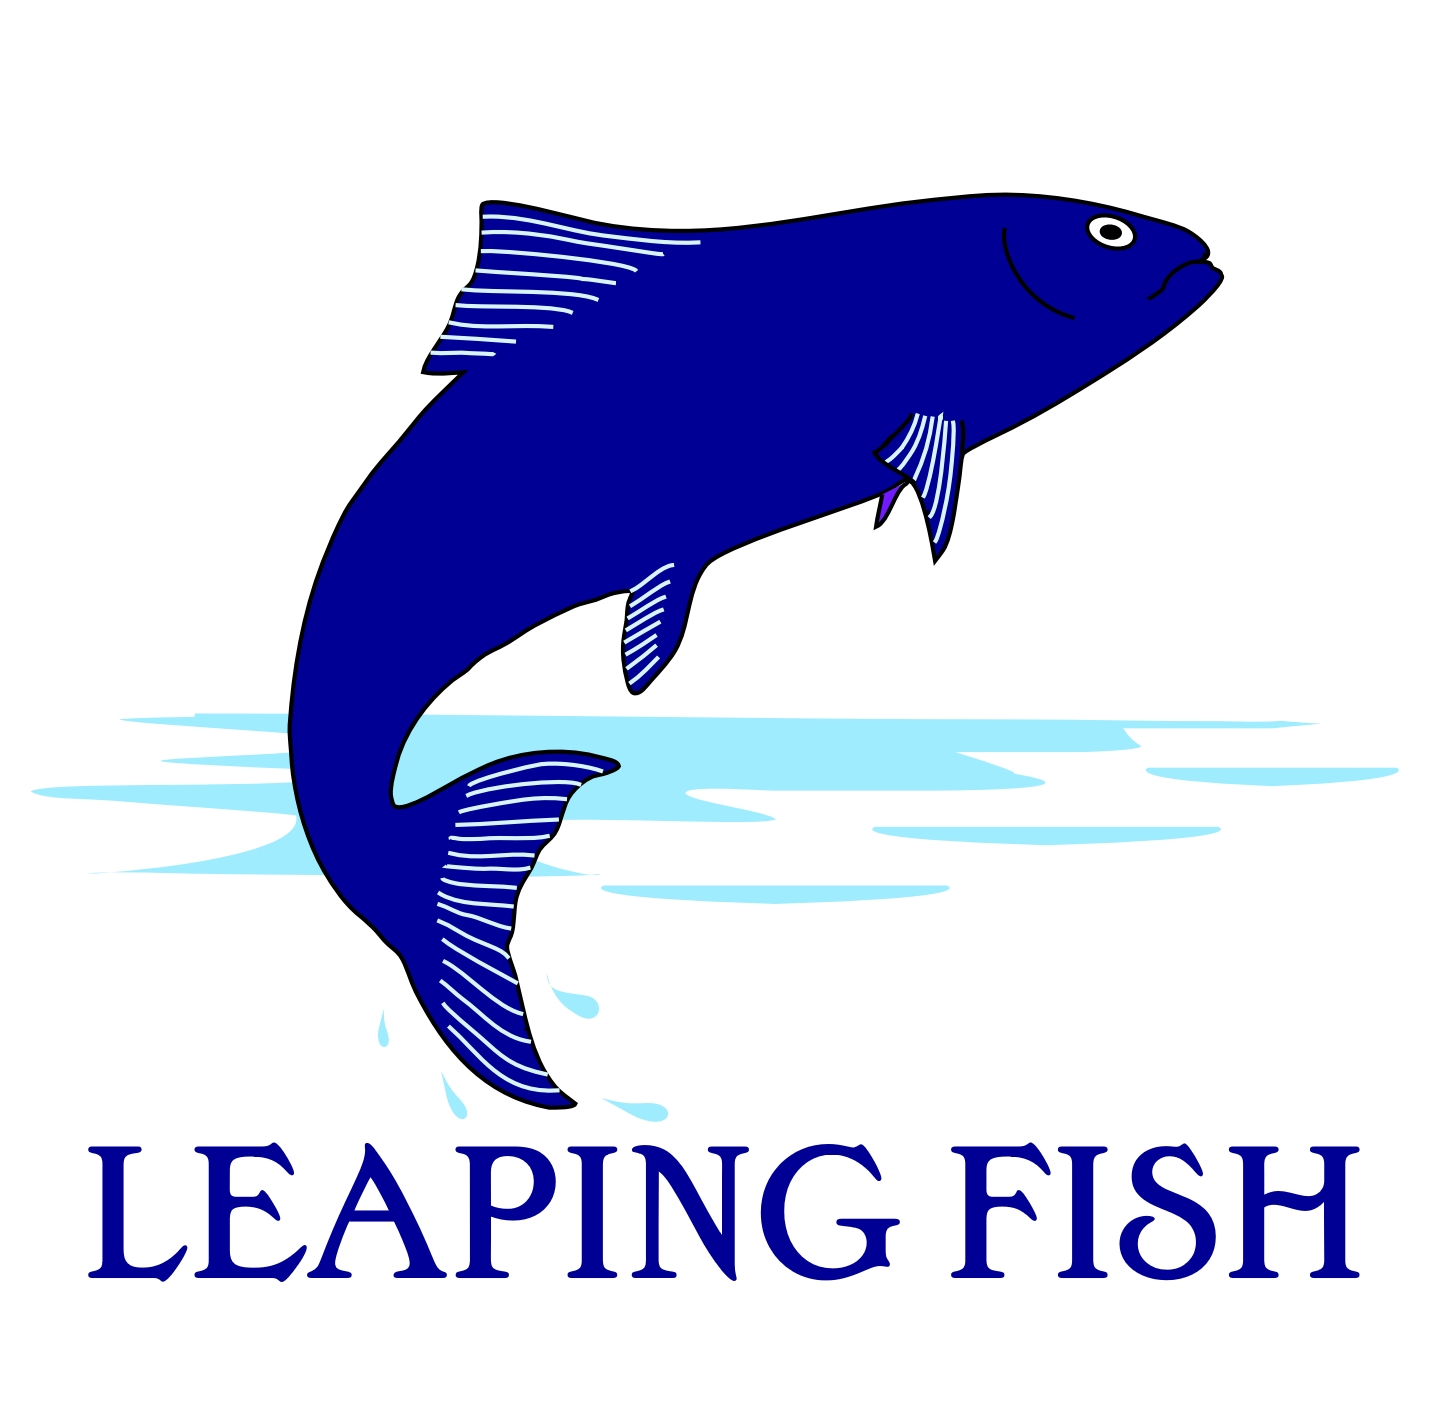 Leaping Fish